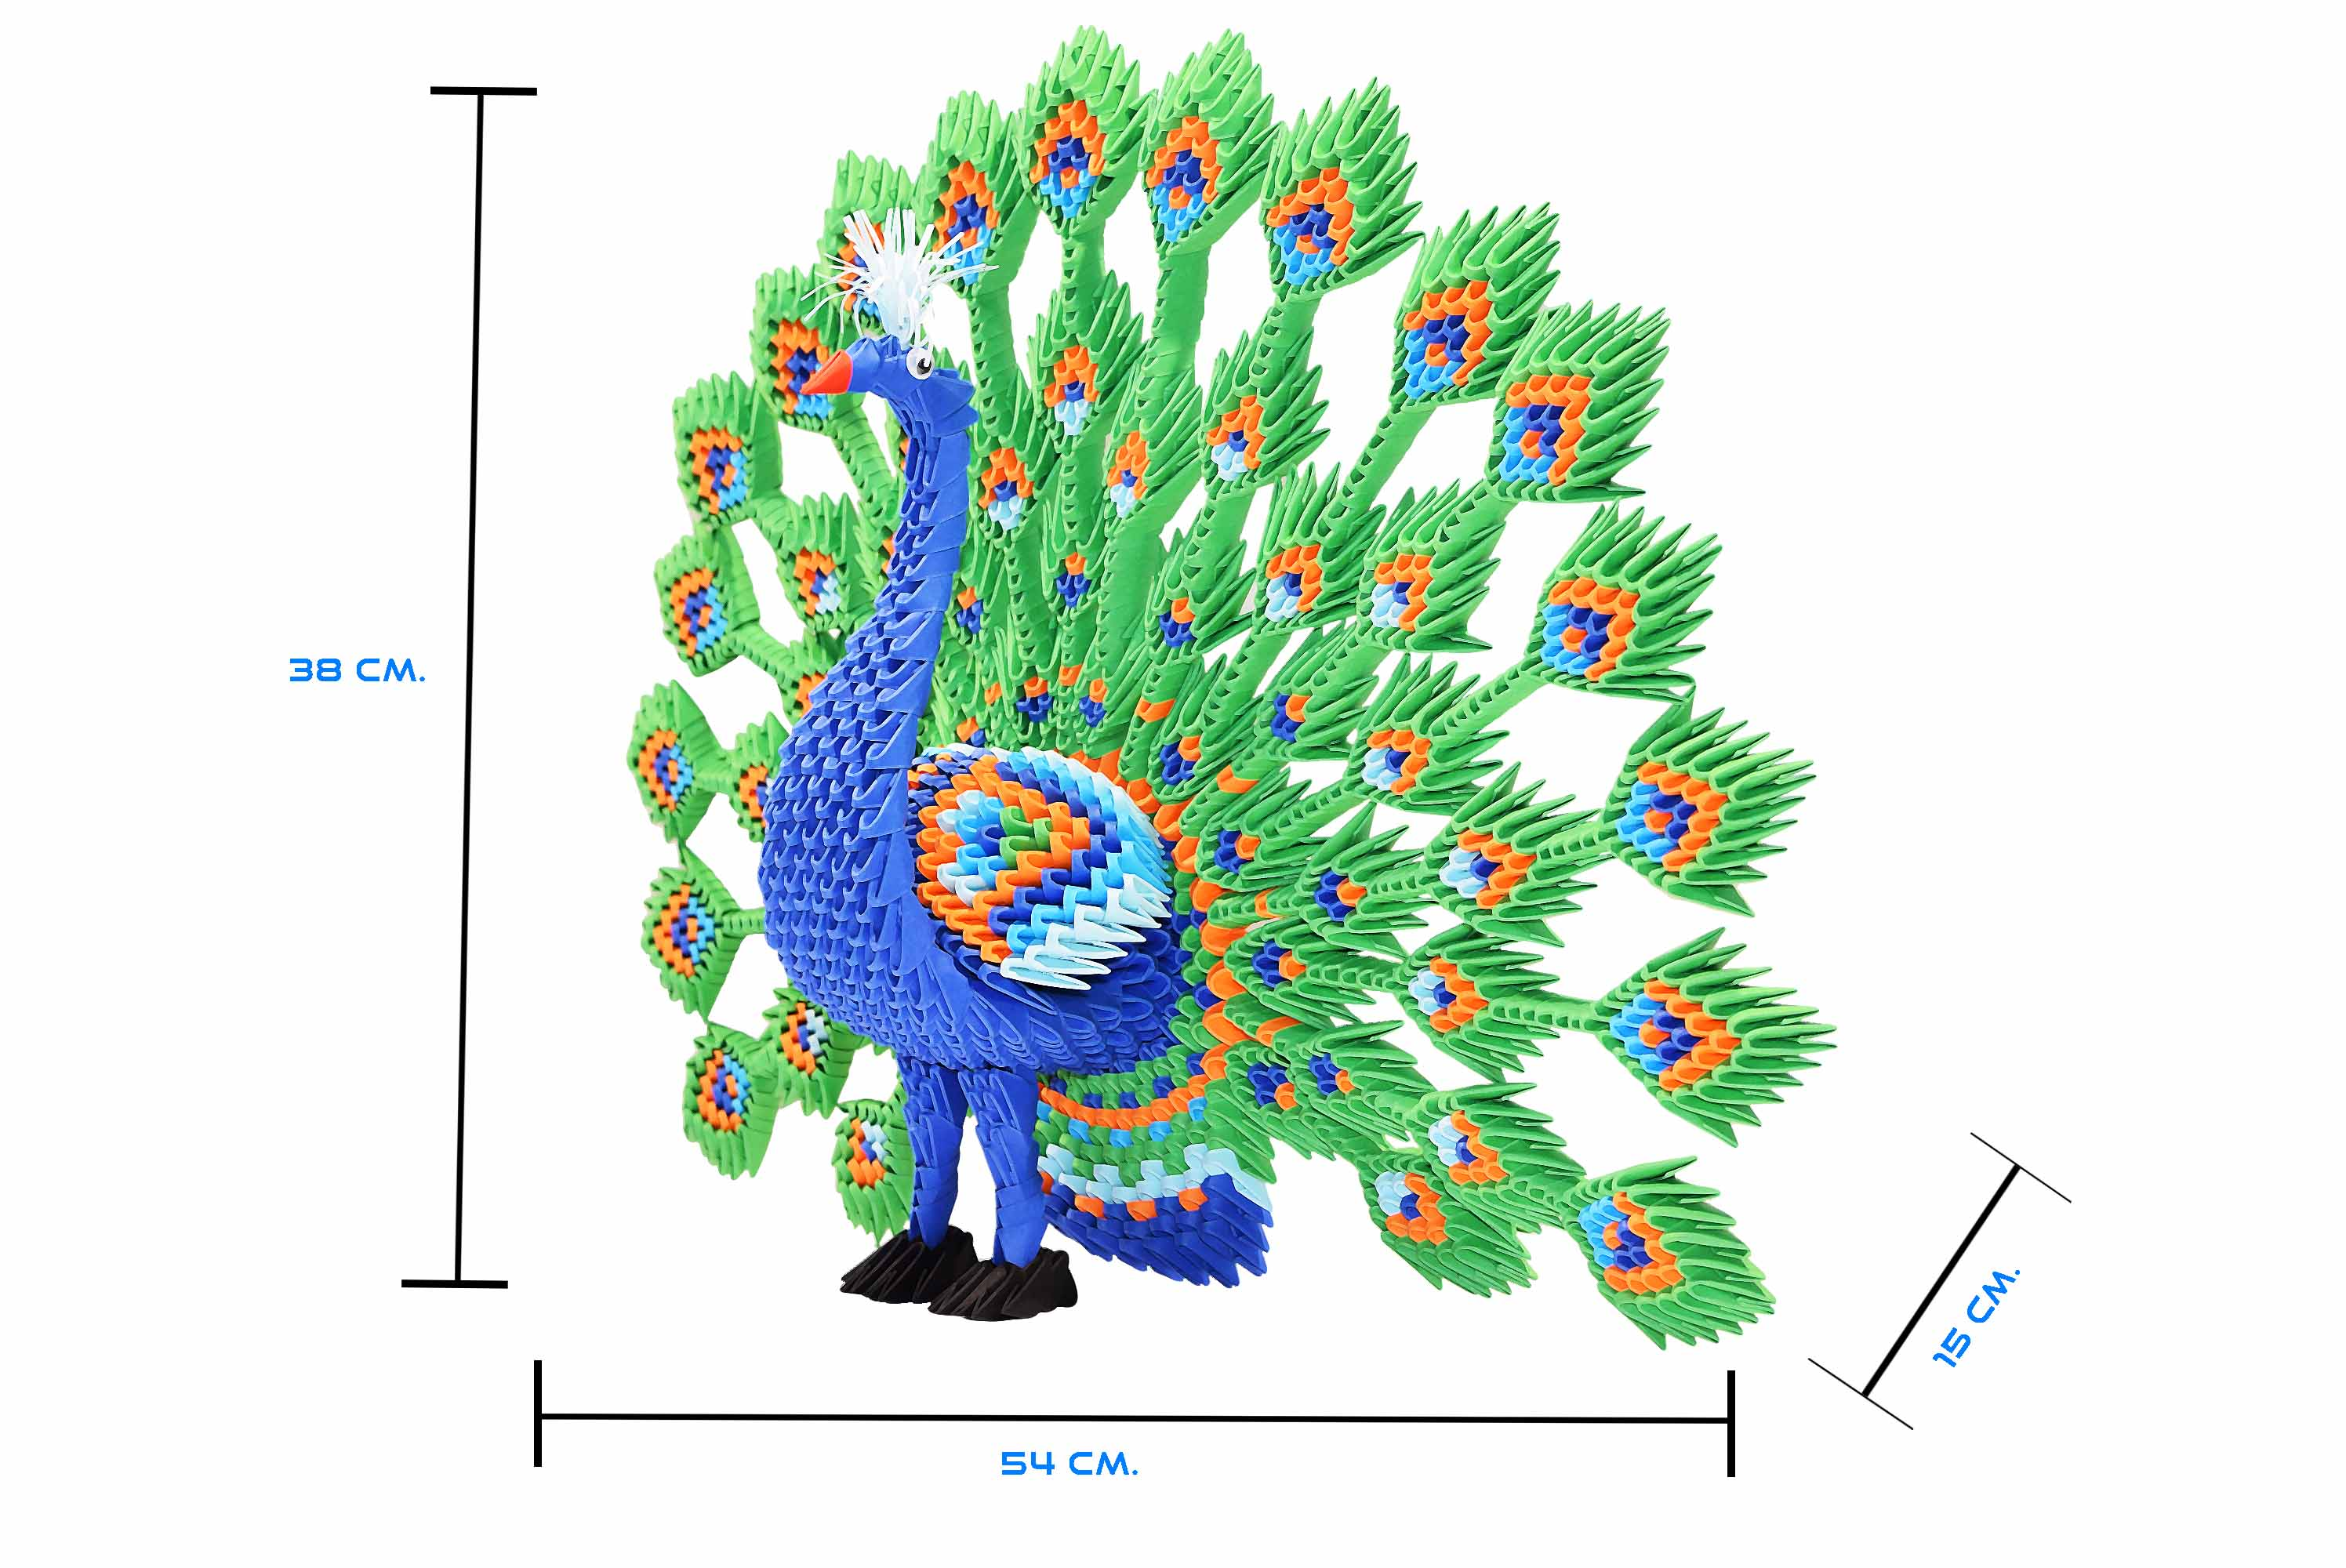 3d Origami Peacock Instructions - photo#34